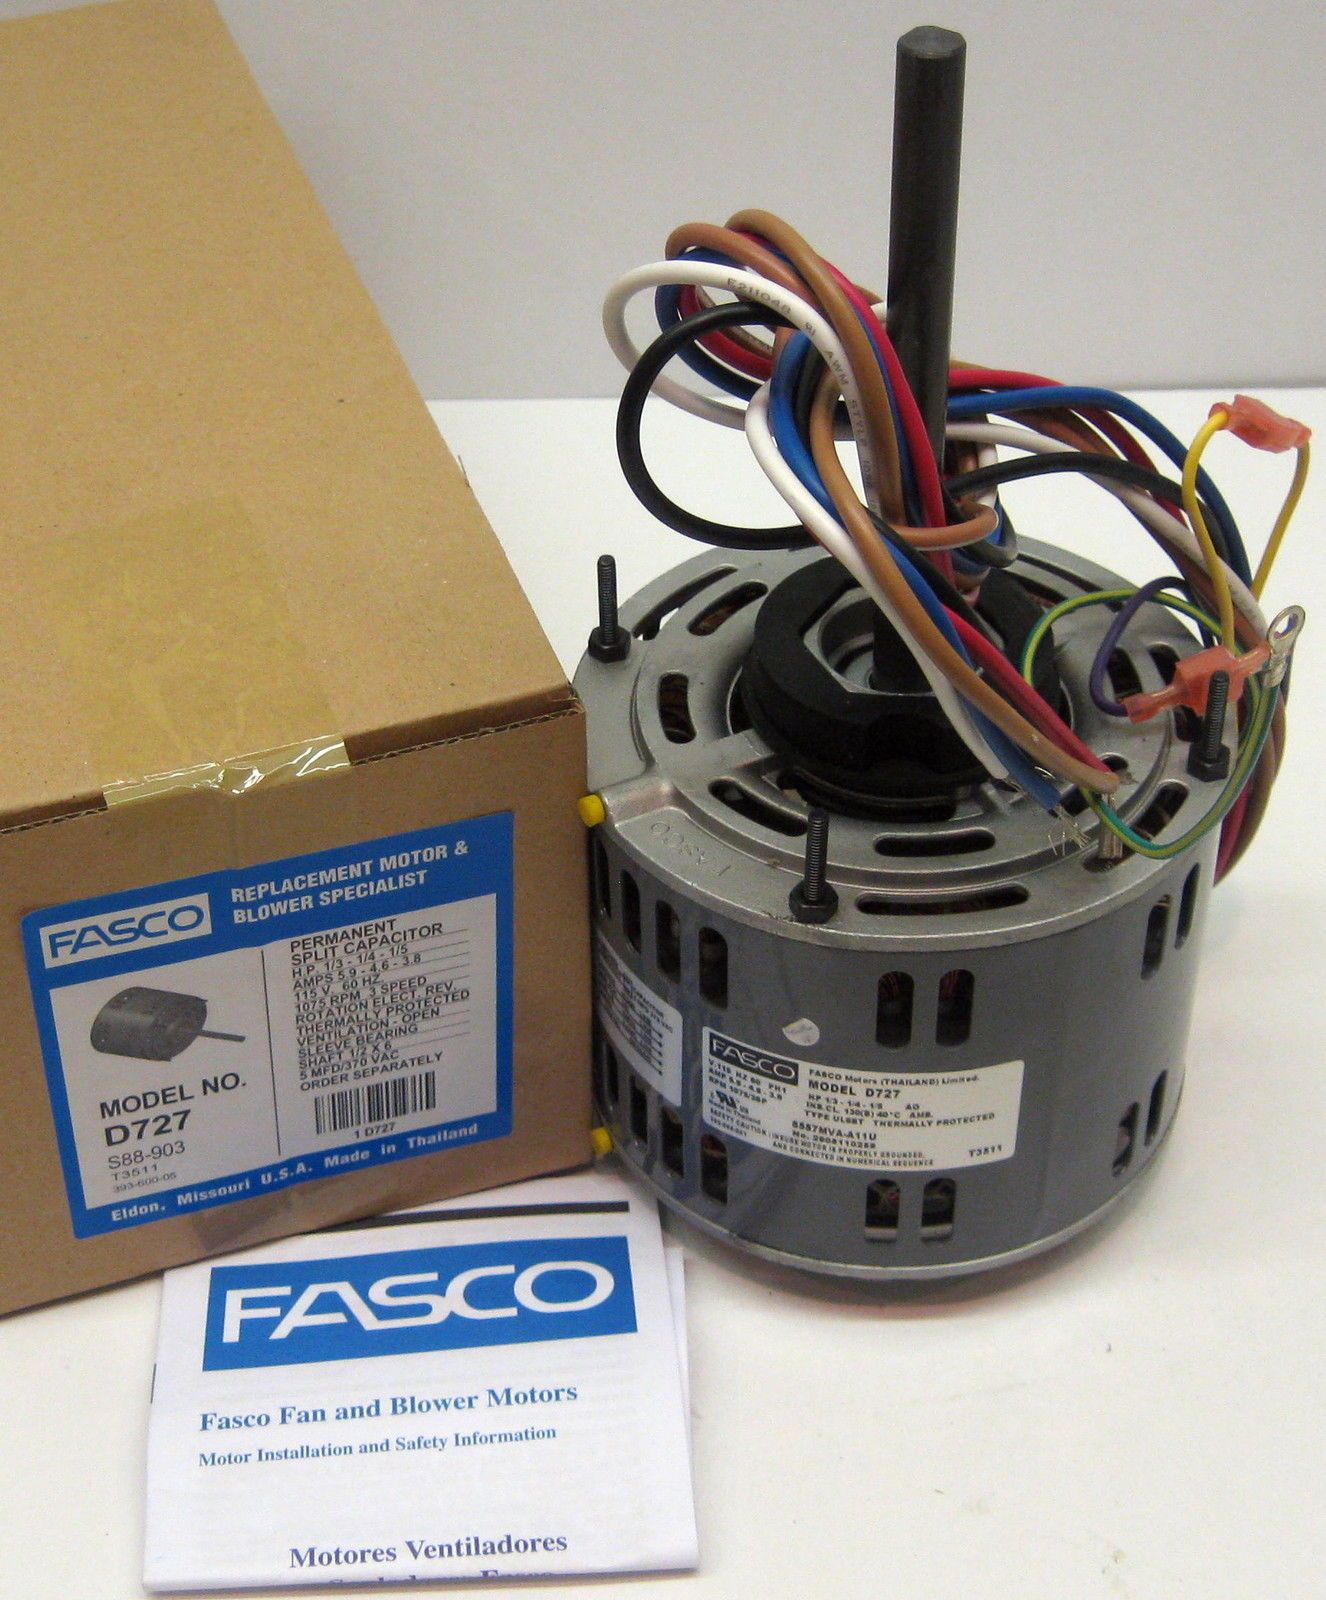 d727 fasco 1 3 hp 1075 rpm 115 v 3 speed furnace blower fan motor  d727 fasco 1 3 hp 1075 rpm 115 v 3 speed furnace blower fan motor